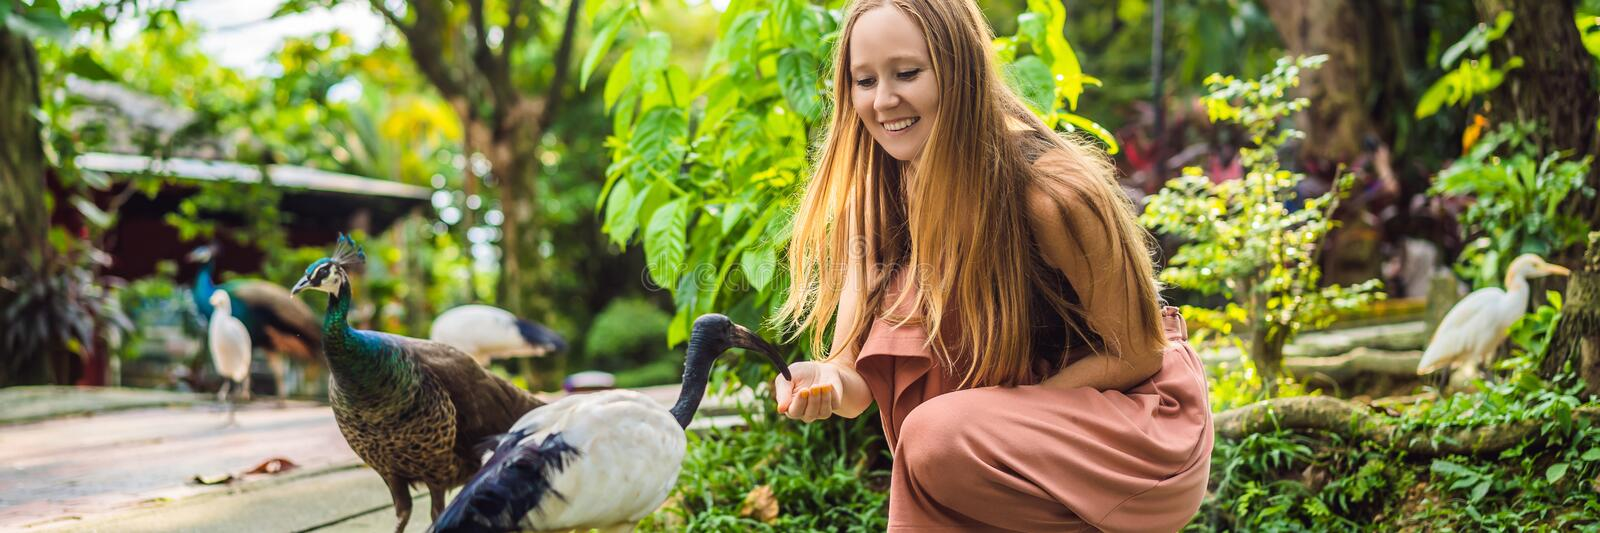 Young woman feeding an African Sacred ibis BANNER, LONG FORMAT stock photo